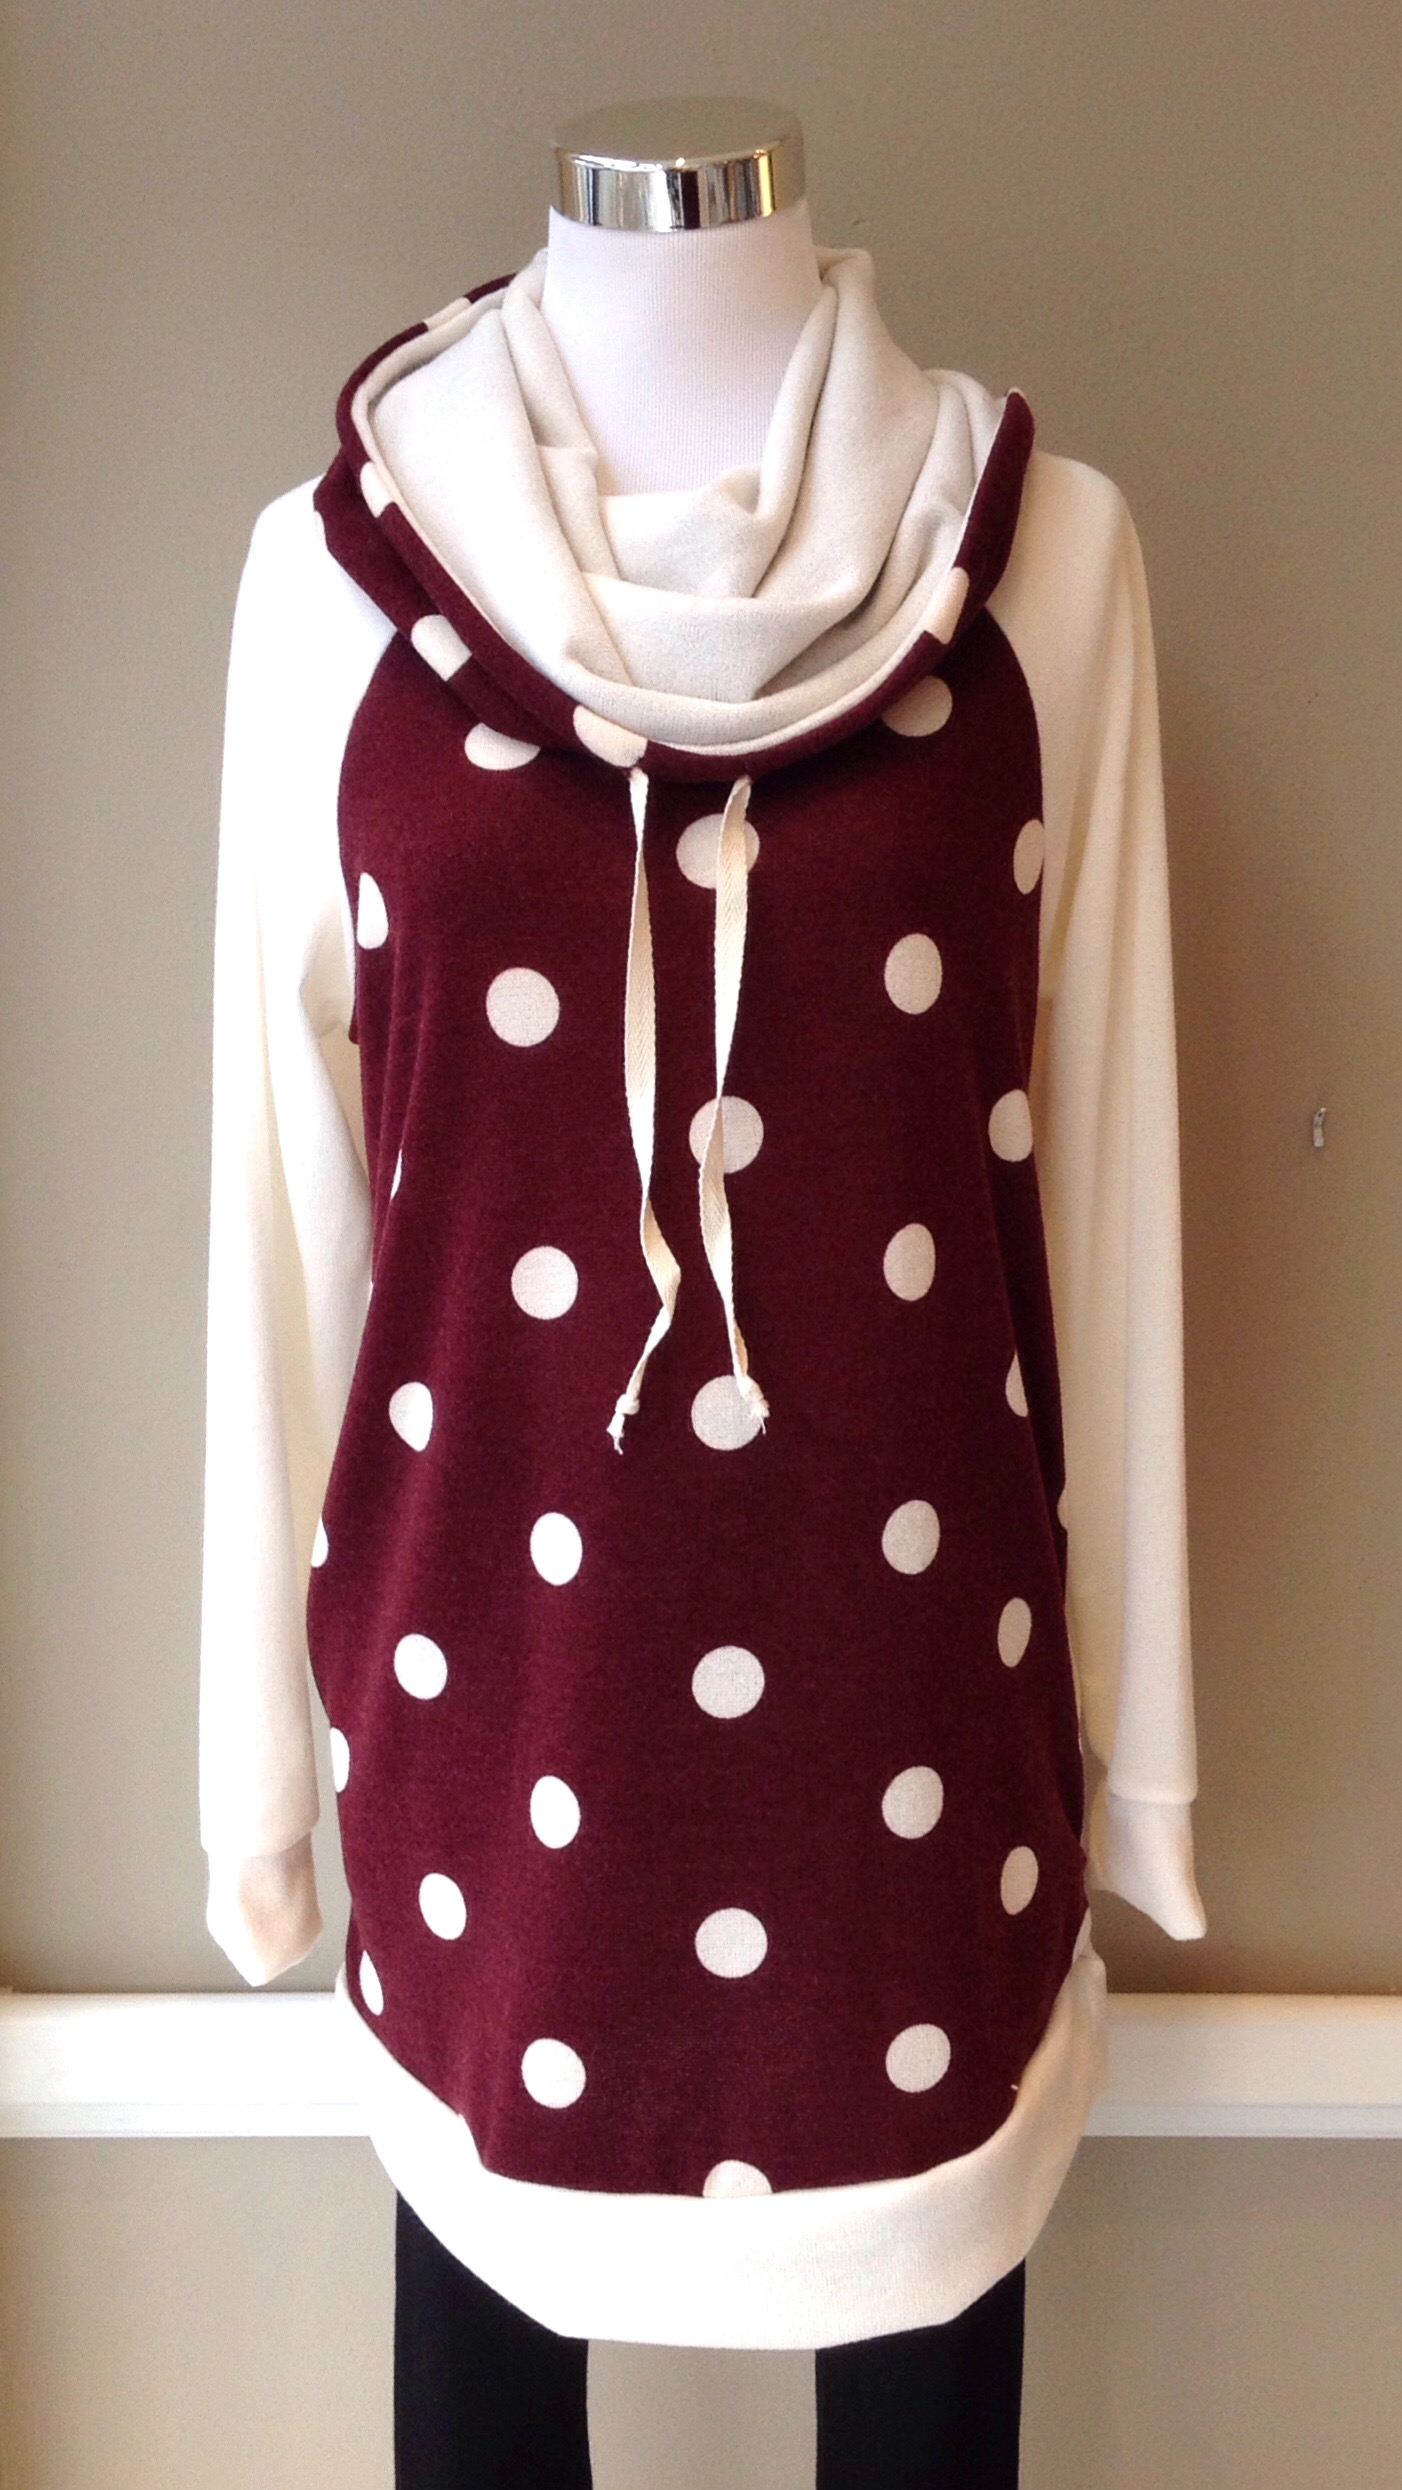 Polka dot hoodie in burgundy/ivory, $38. Also available in ivory/black.